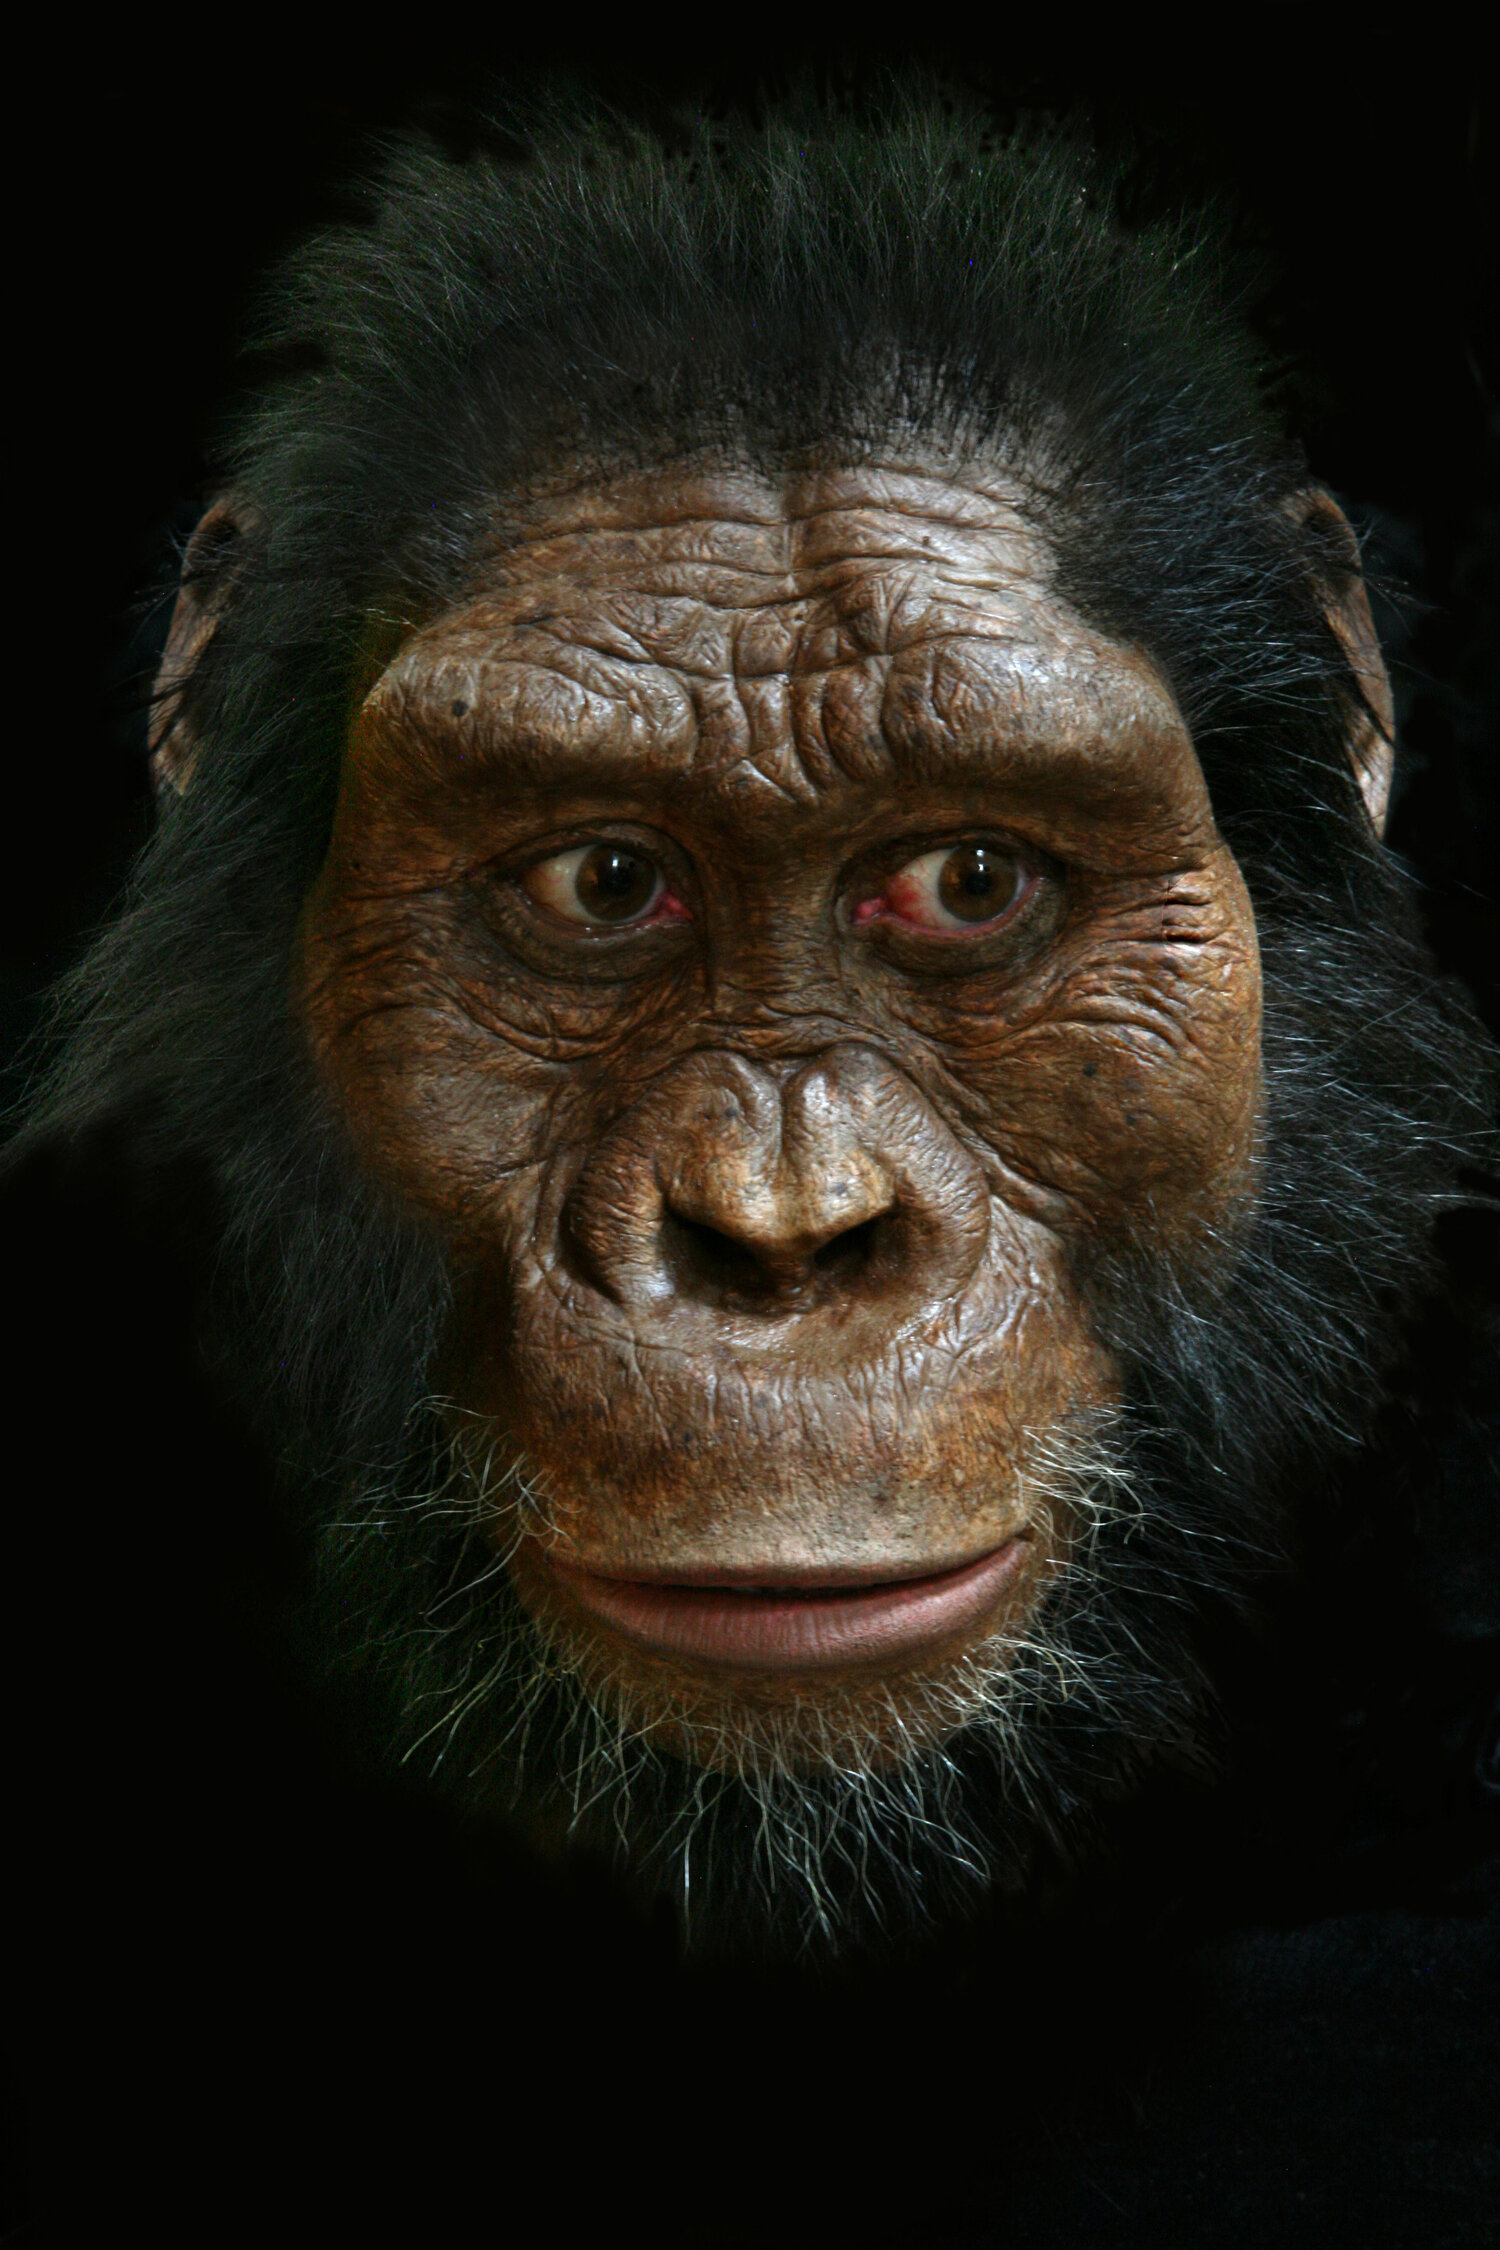 The first known skull of  Australopithecus anamensis  was announced on August 28th, 2019. I was commissioned to reconstruct the face, and this is the result. This is the oldest known and most primitive species of  Australopithecus , and it stretches the boundary of anatomy known for the genus.